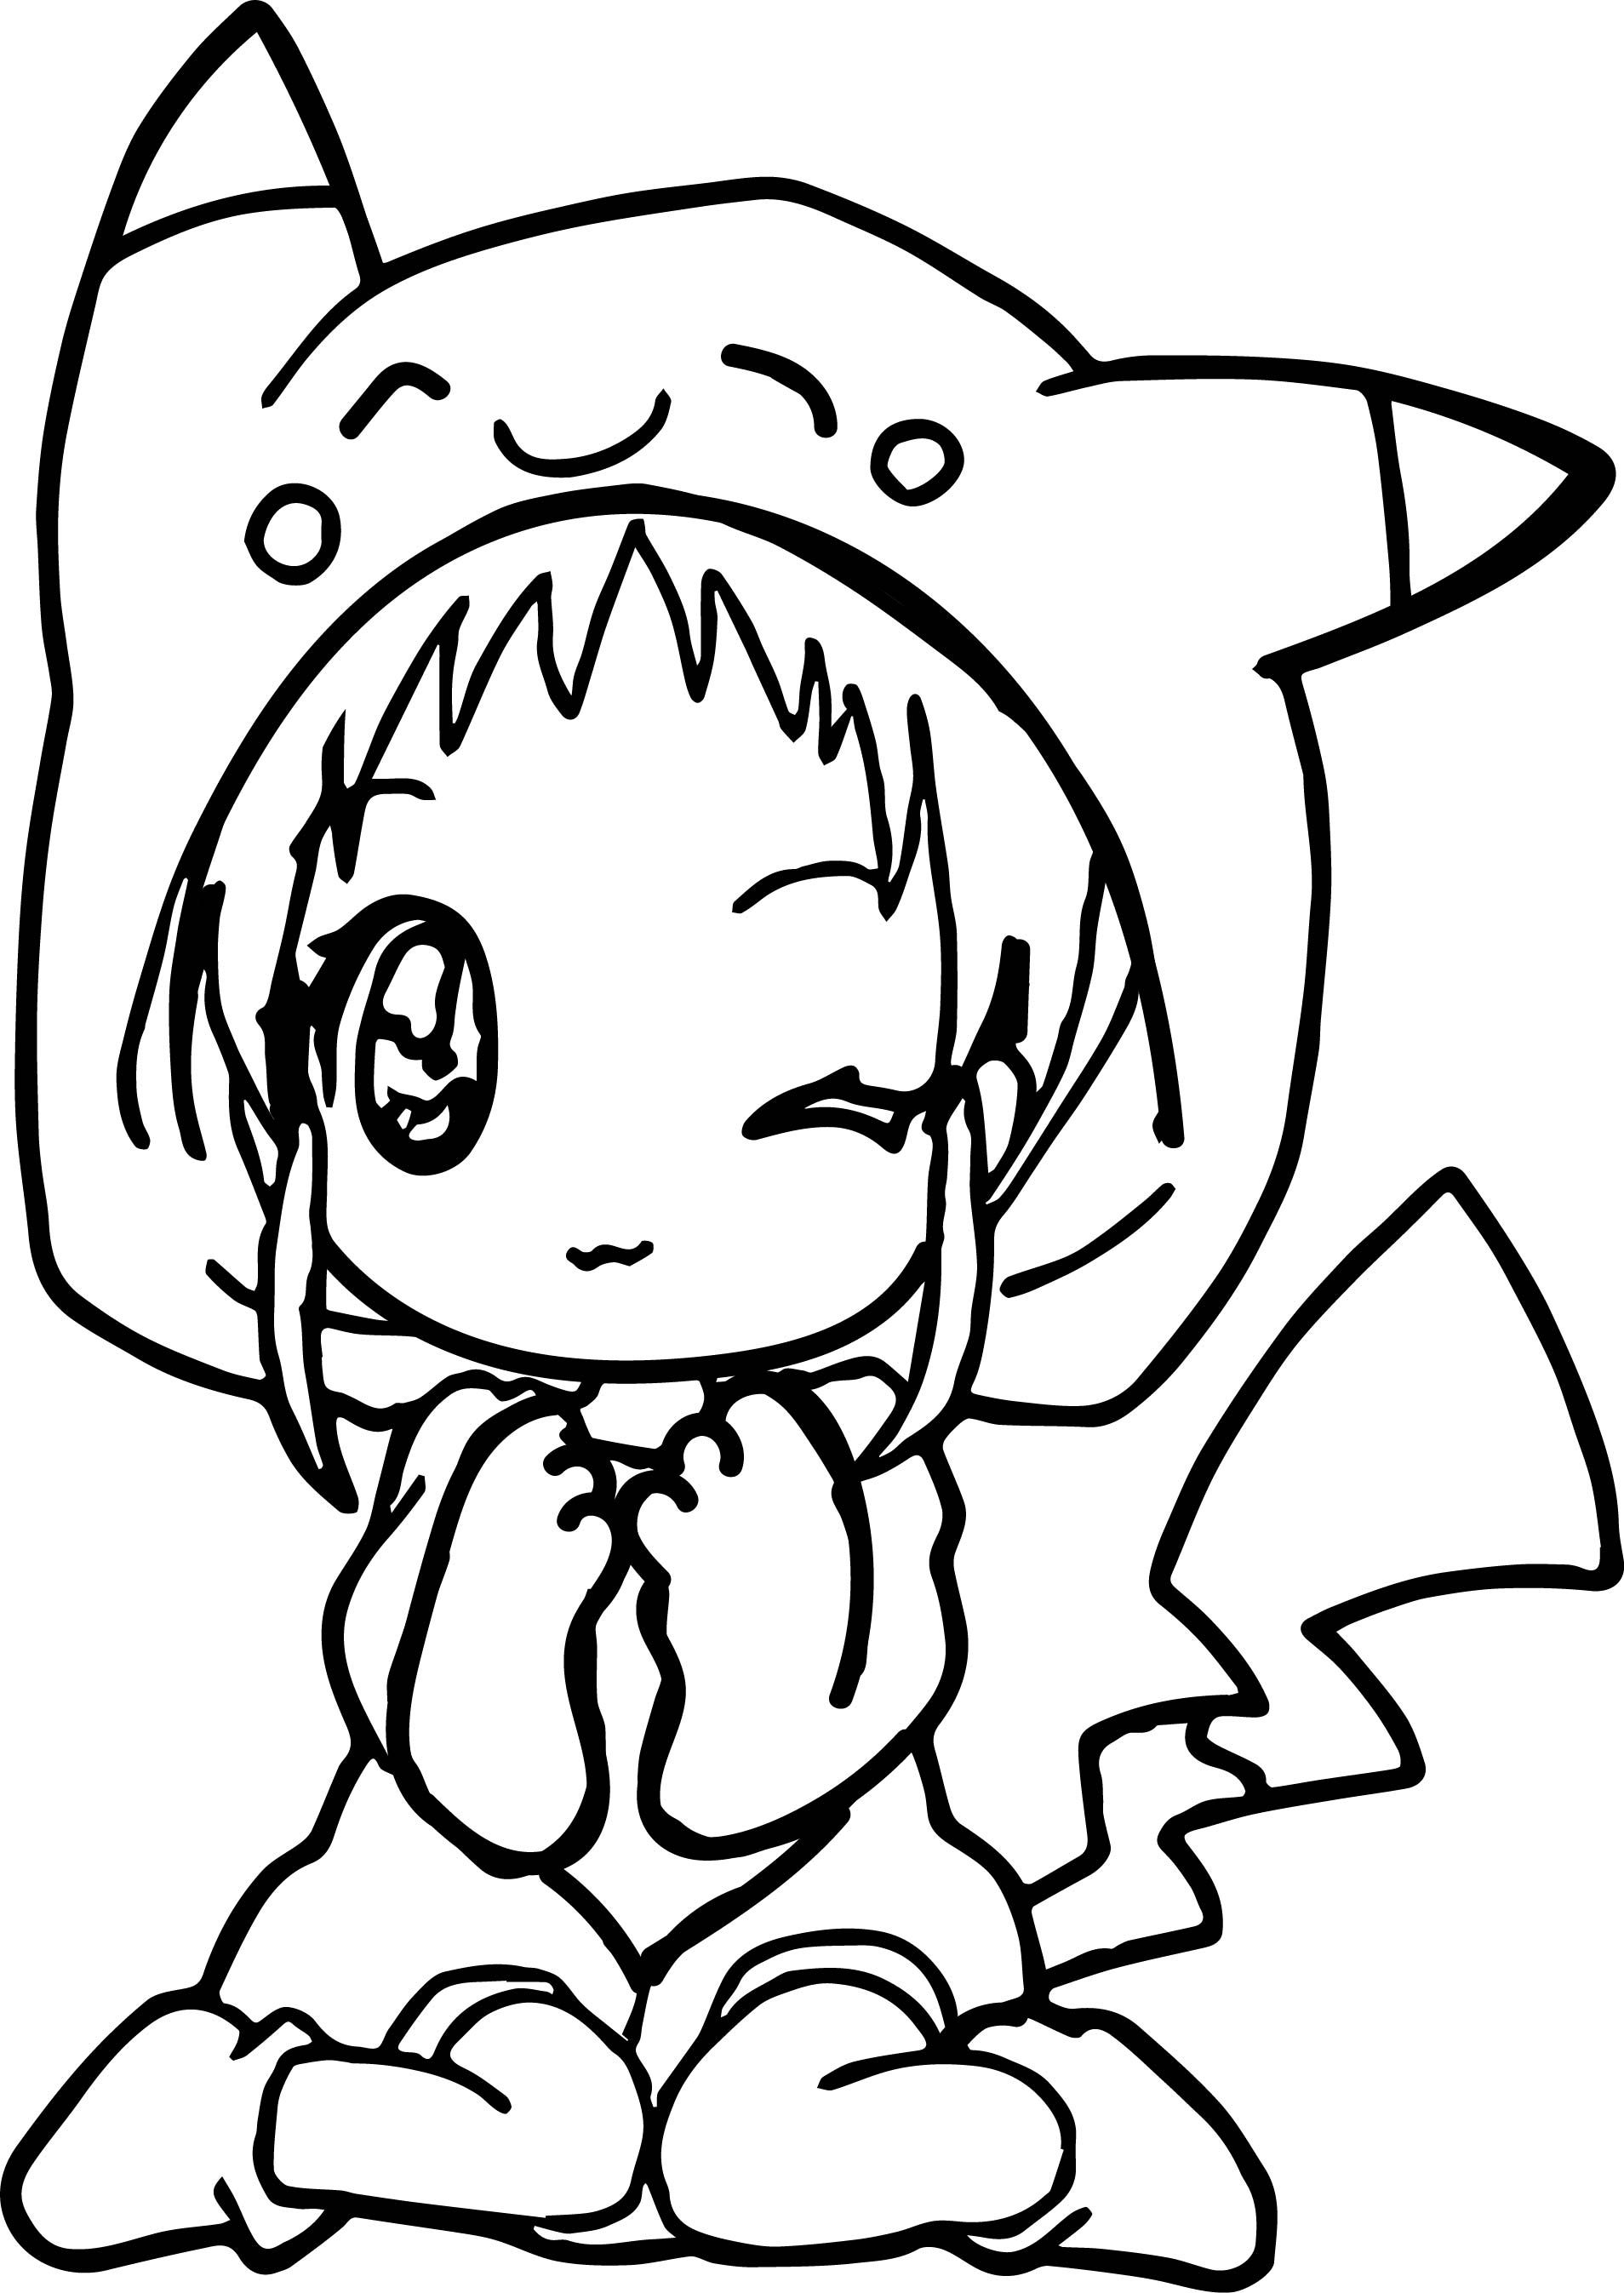 Anime Girl Coloring Pages : anime, coloring, pages, Projects